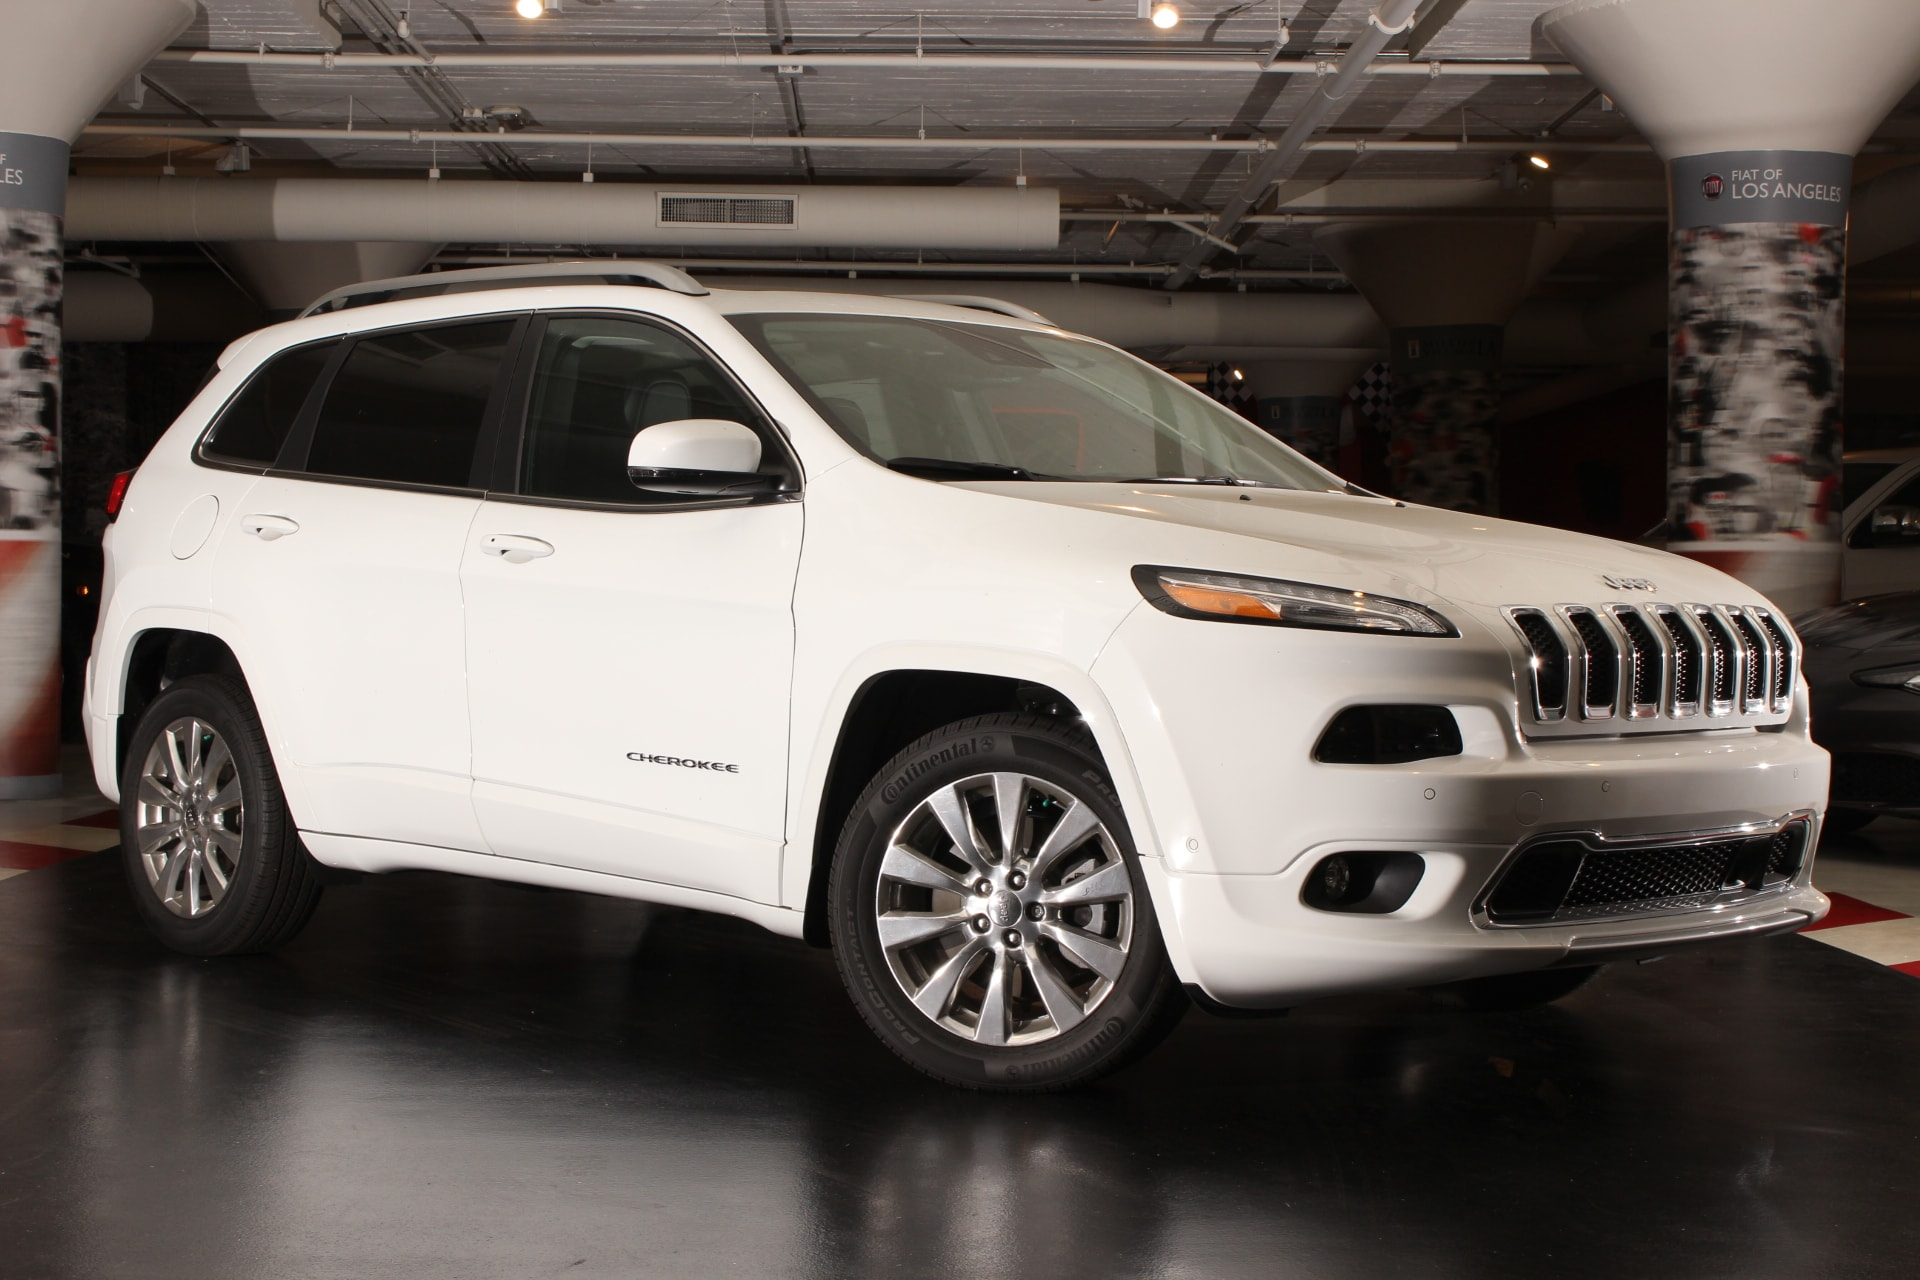 2016 Jeep Cherokee Overland FWD  600 Amp Maintenance Free Battery Active Grille Shutters Adapti